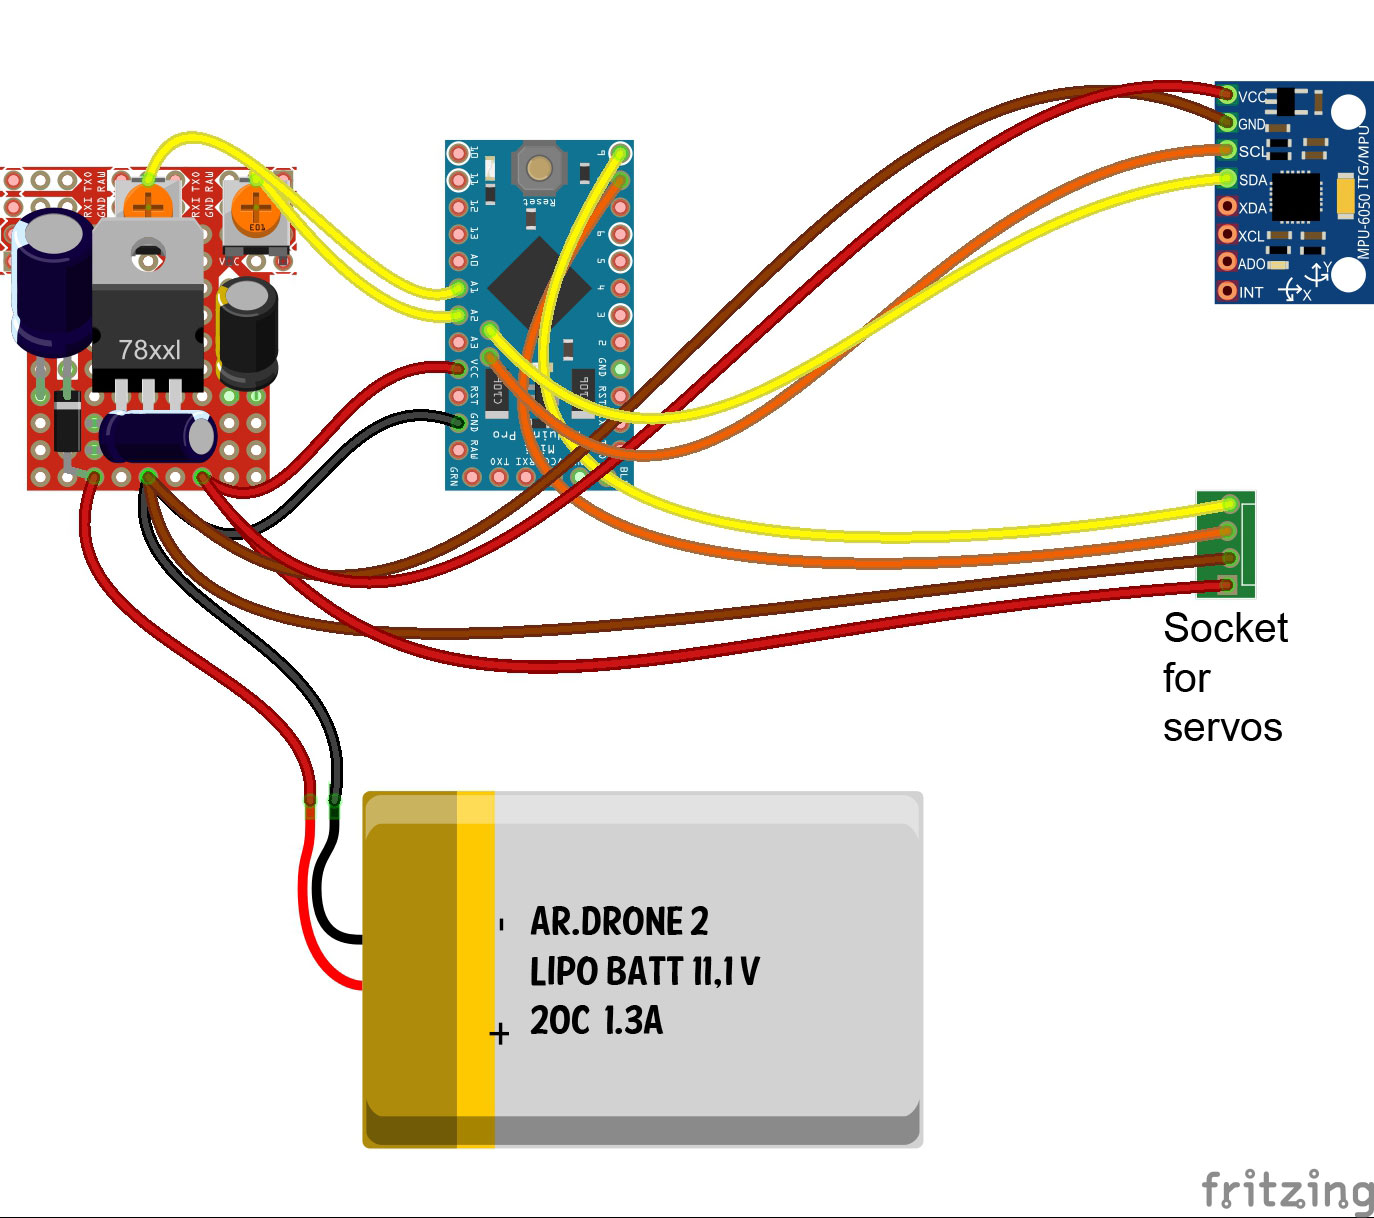 Ar Drone 2 0 Wiring Diagram Library. Servo And Sensor. Mini Cooper. Mini Drone Wiring Diagram At Scoala.co